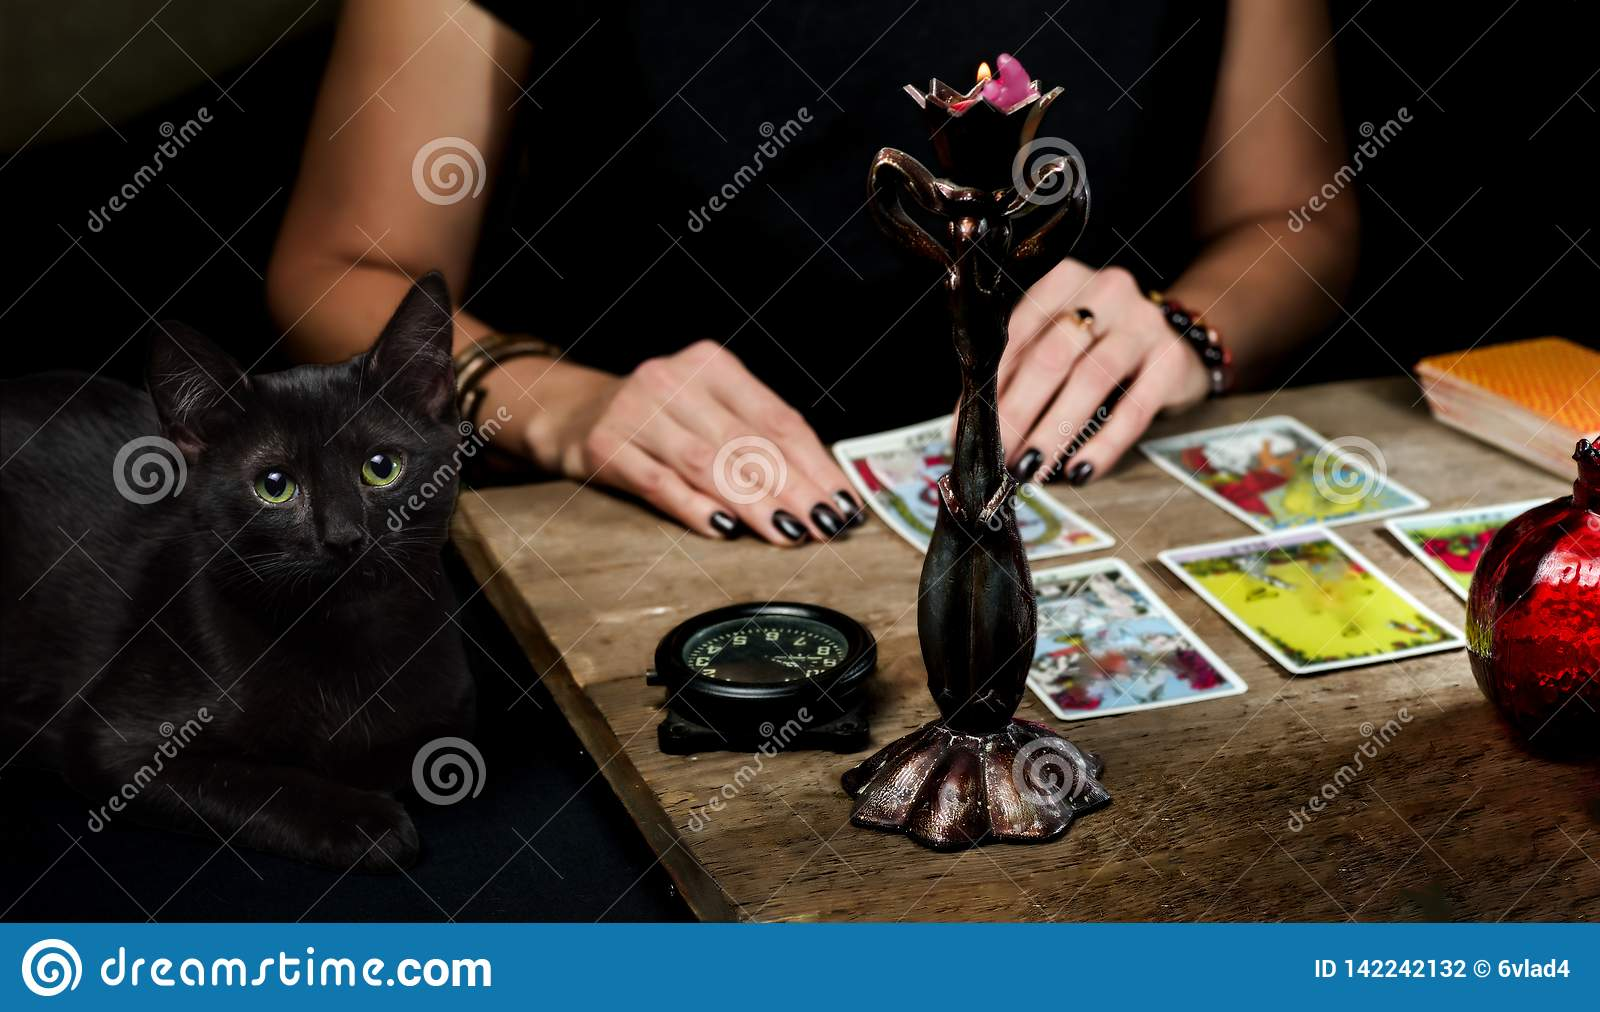 The fortune teller lays out on a wooden table the tarot cards by the light of a candle. Black cat sitting near the table.